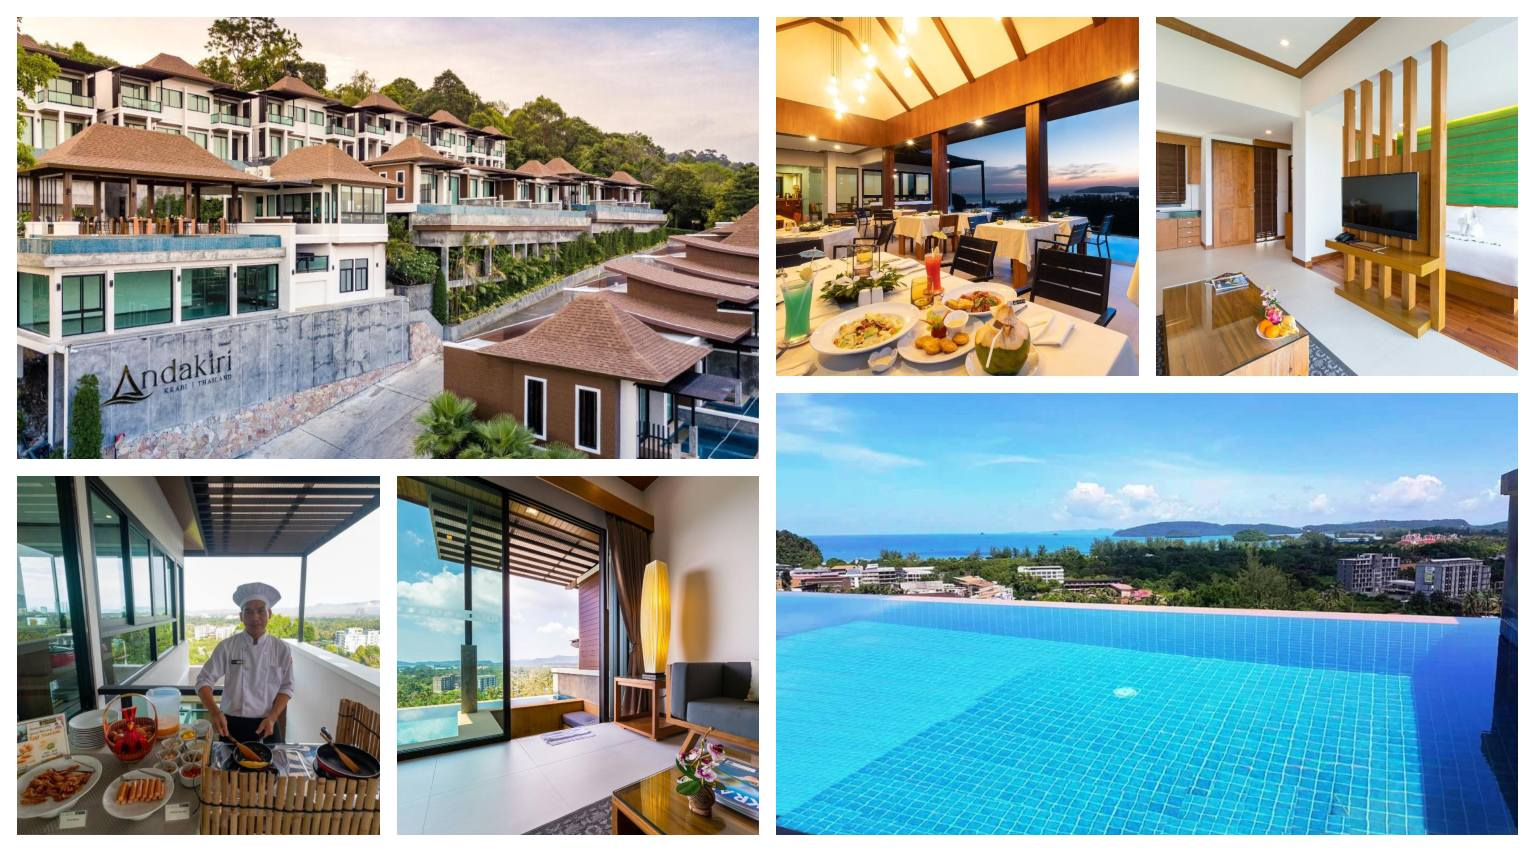 Collage Andakiri Pool Villa in Ao Nang, Thailand